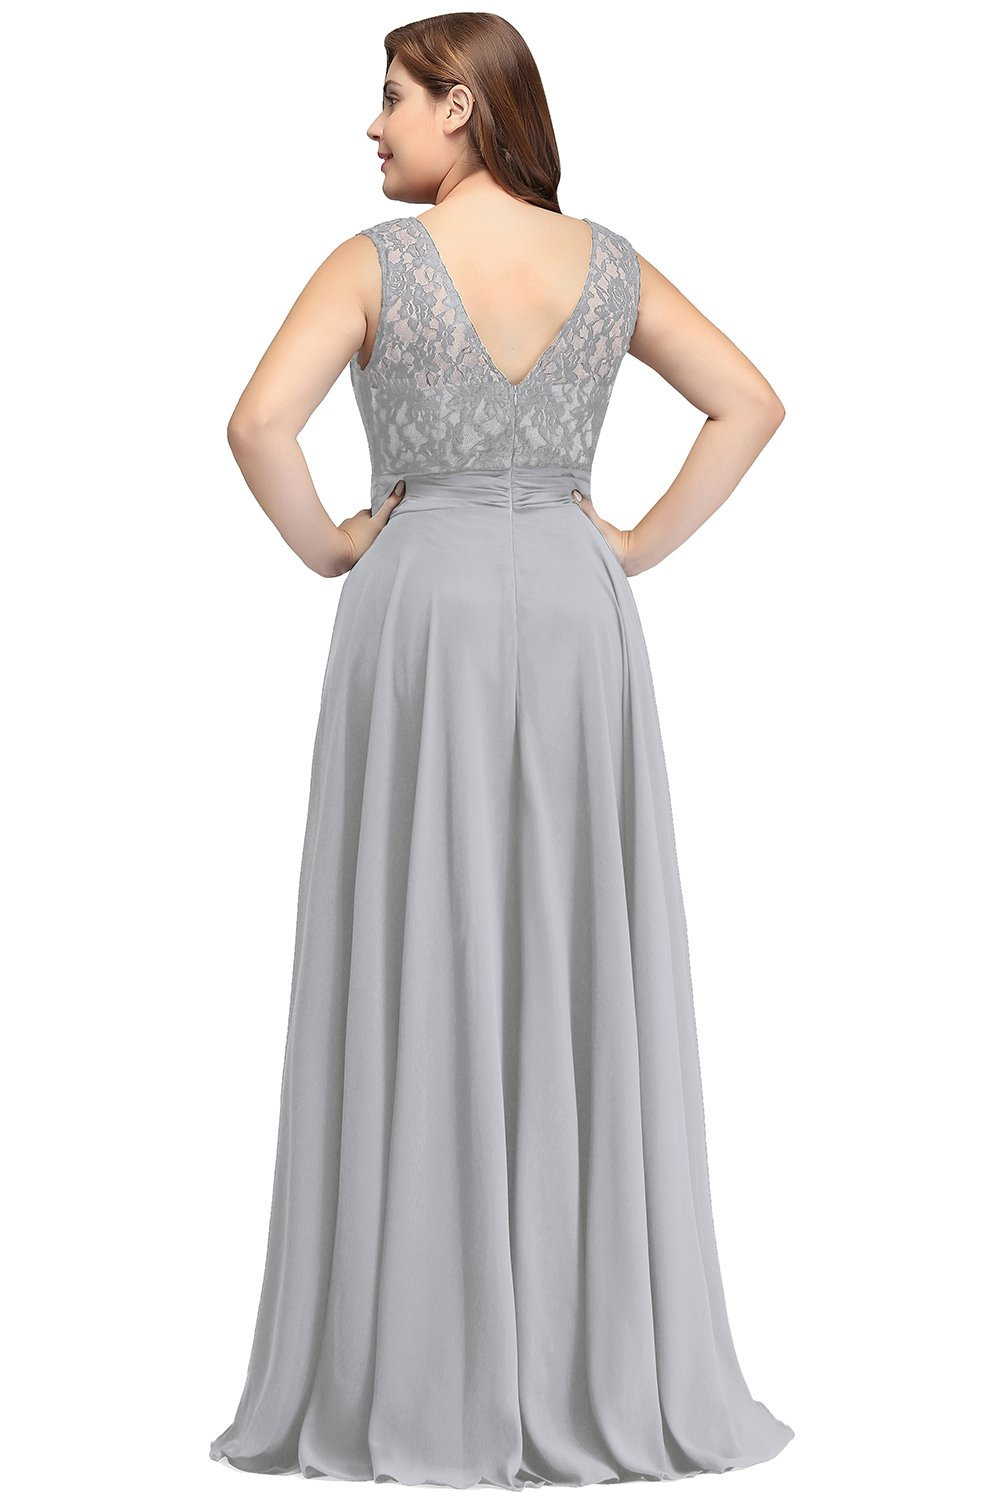 Lace Bridesmaid Dresses Plus Size Long Prom Evening Gowns for Women Silver  16W